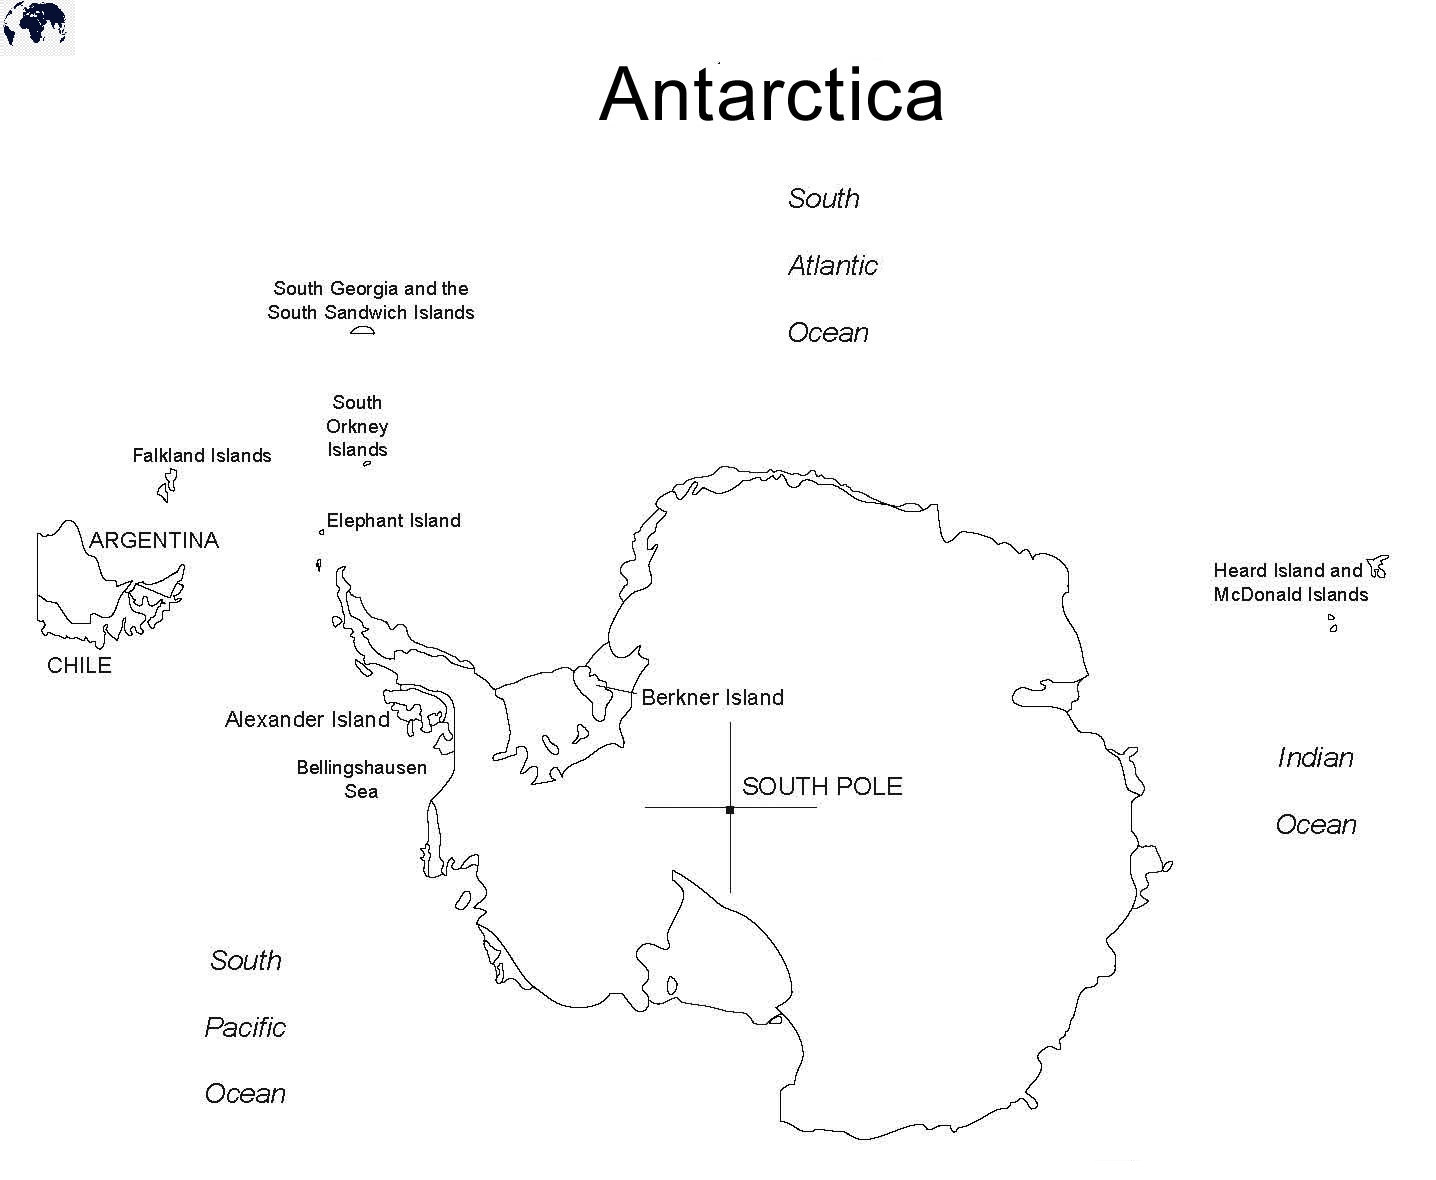 Printable Map of Antarctica